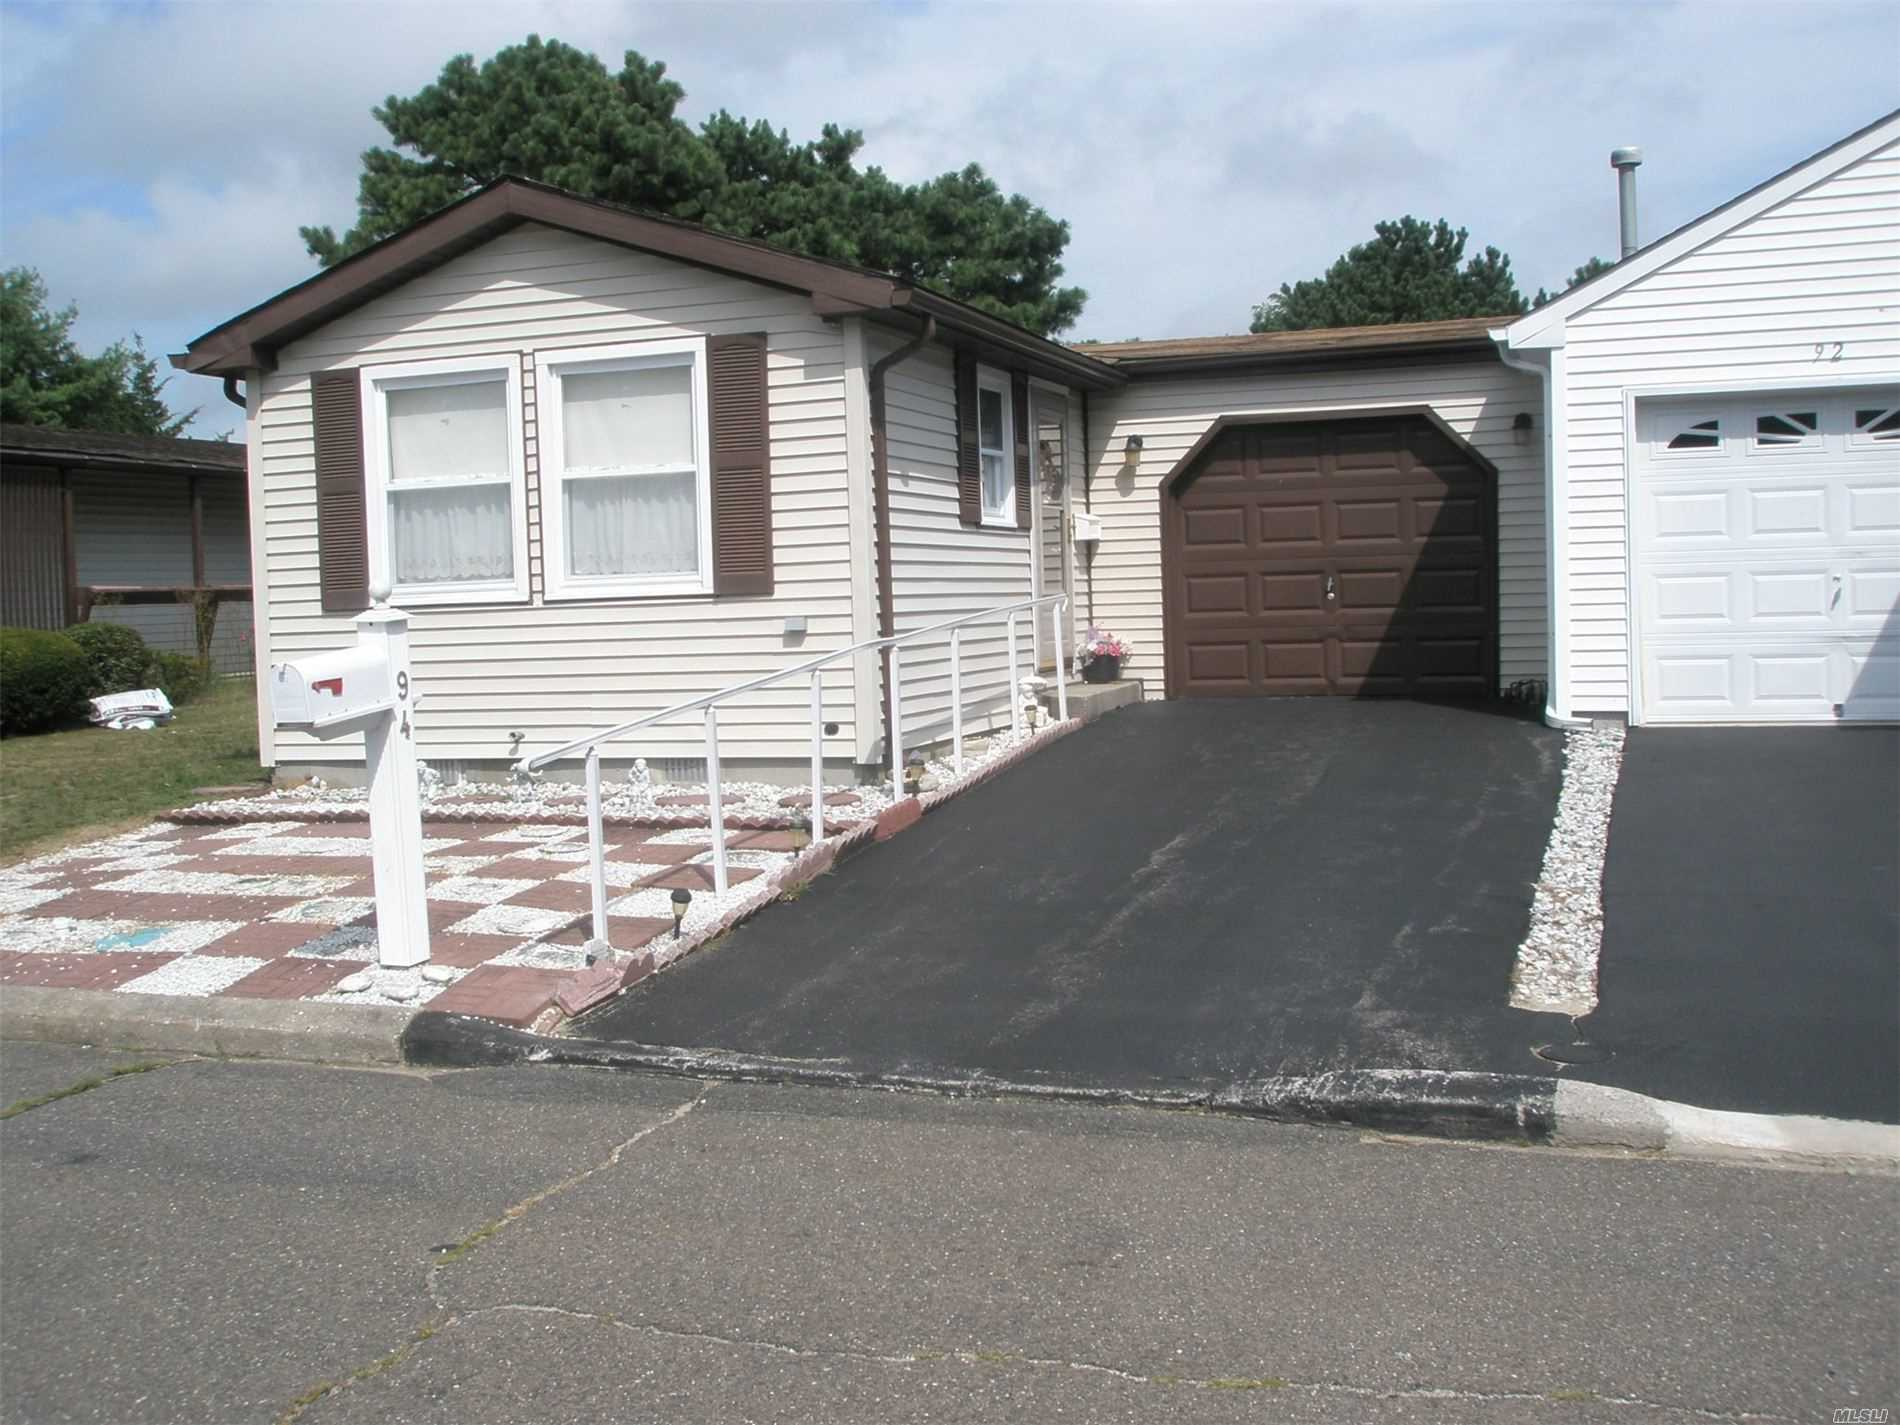 Property for sale at 94 Village Circle W, Manorville NY 11949, Manorville,  New York 11949